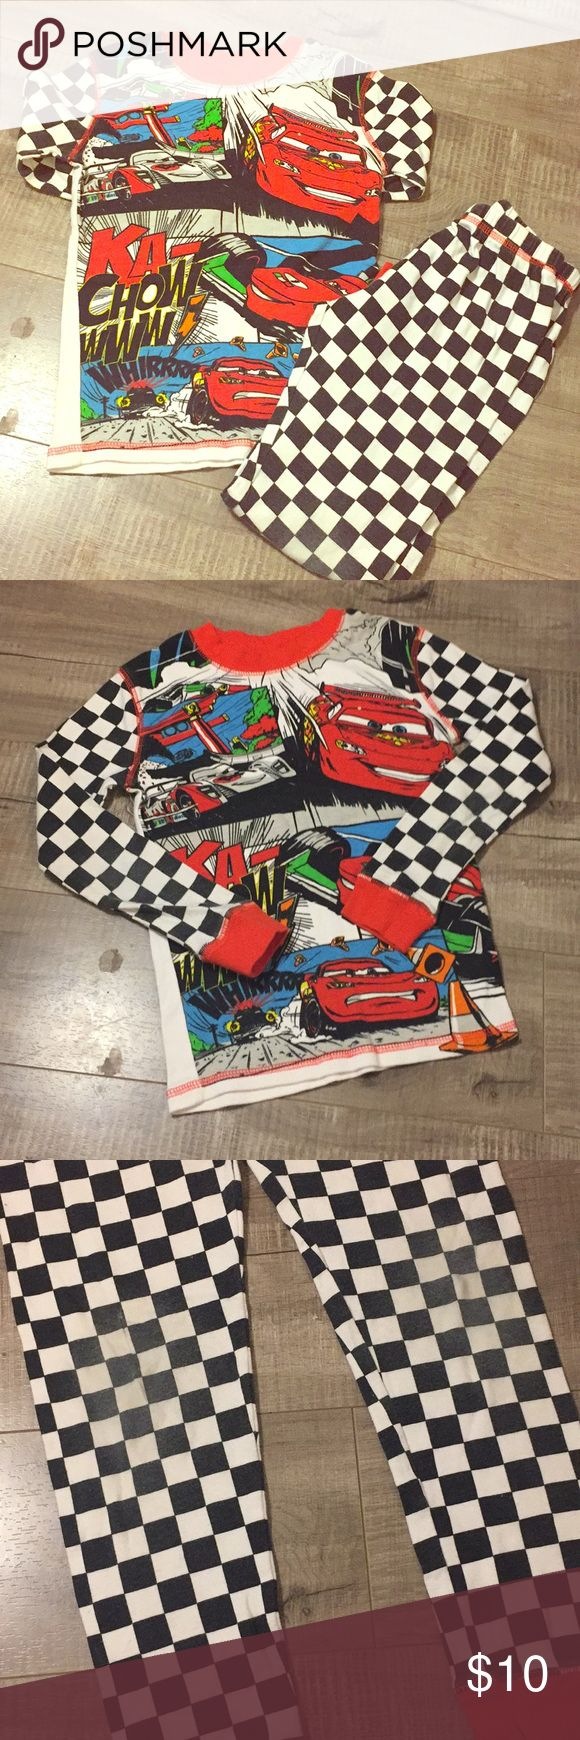 Disney Cars Boys Pajamas Disney Cars Boys Pajama Set Size 8 No Stains, some wash wear & fading The knees of the pants show the most wear and fade.   Fast Shipping!⚡️✨✨✨ Disney Pajamas Pajama Sets